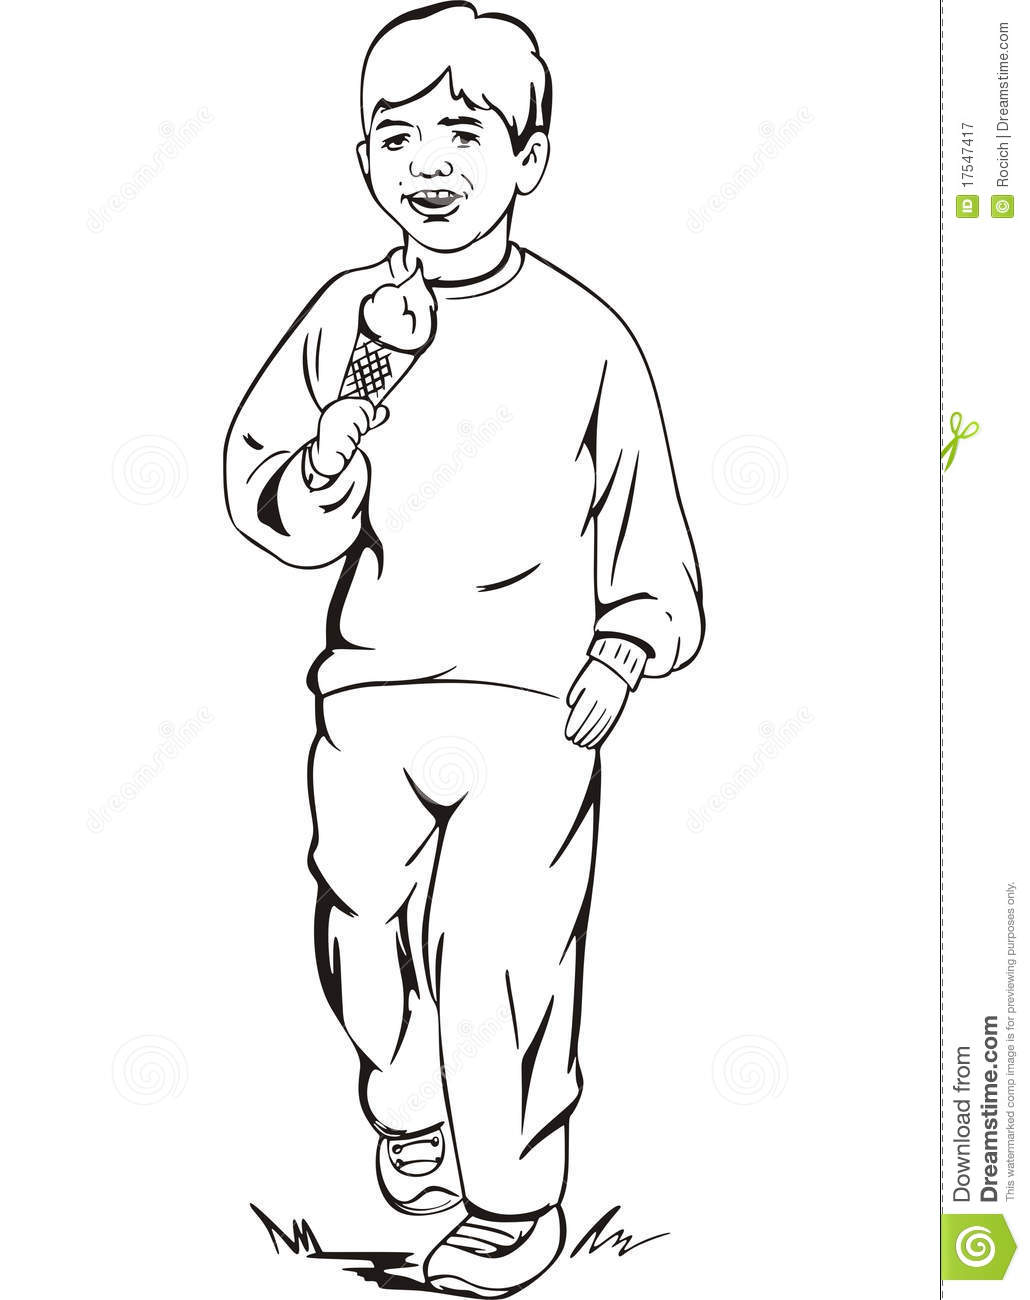 Boy Eating An Ice Cream Royalty Free Stock Photography - Image 17547417